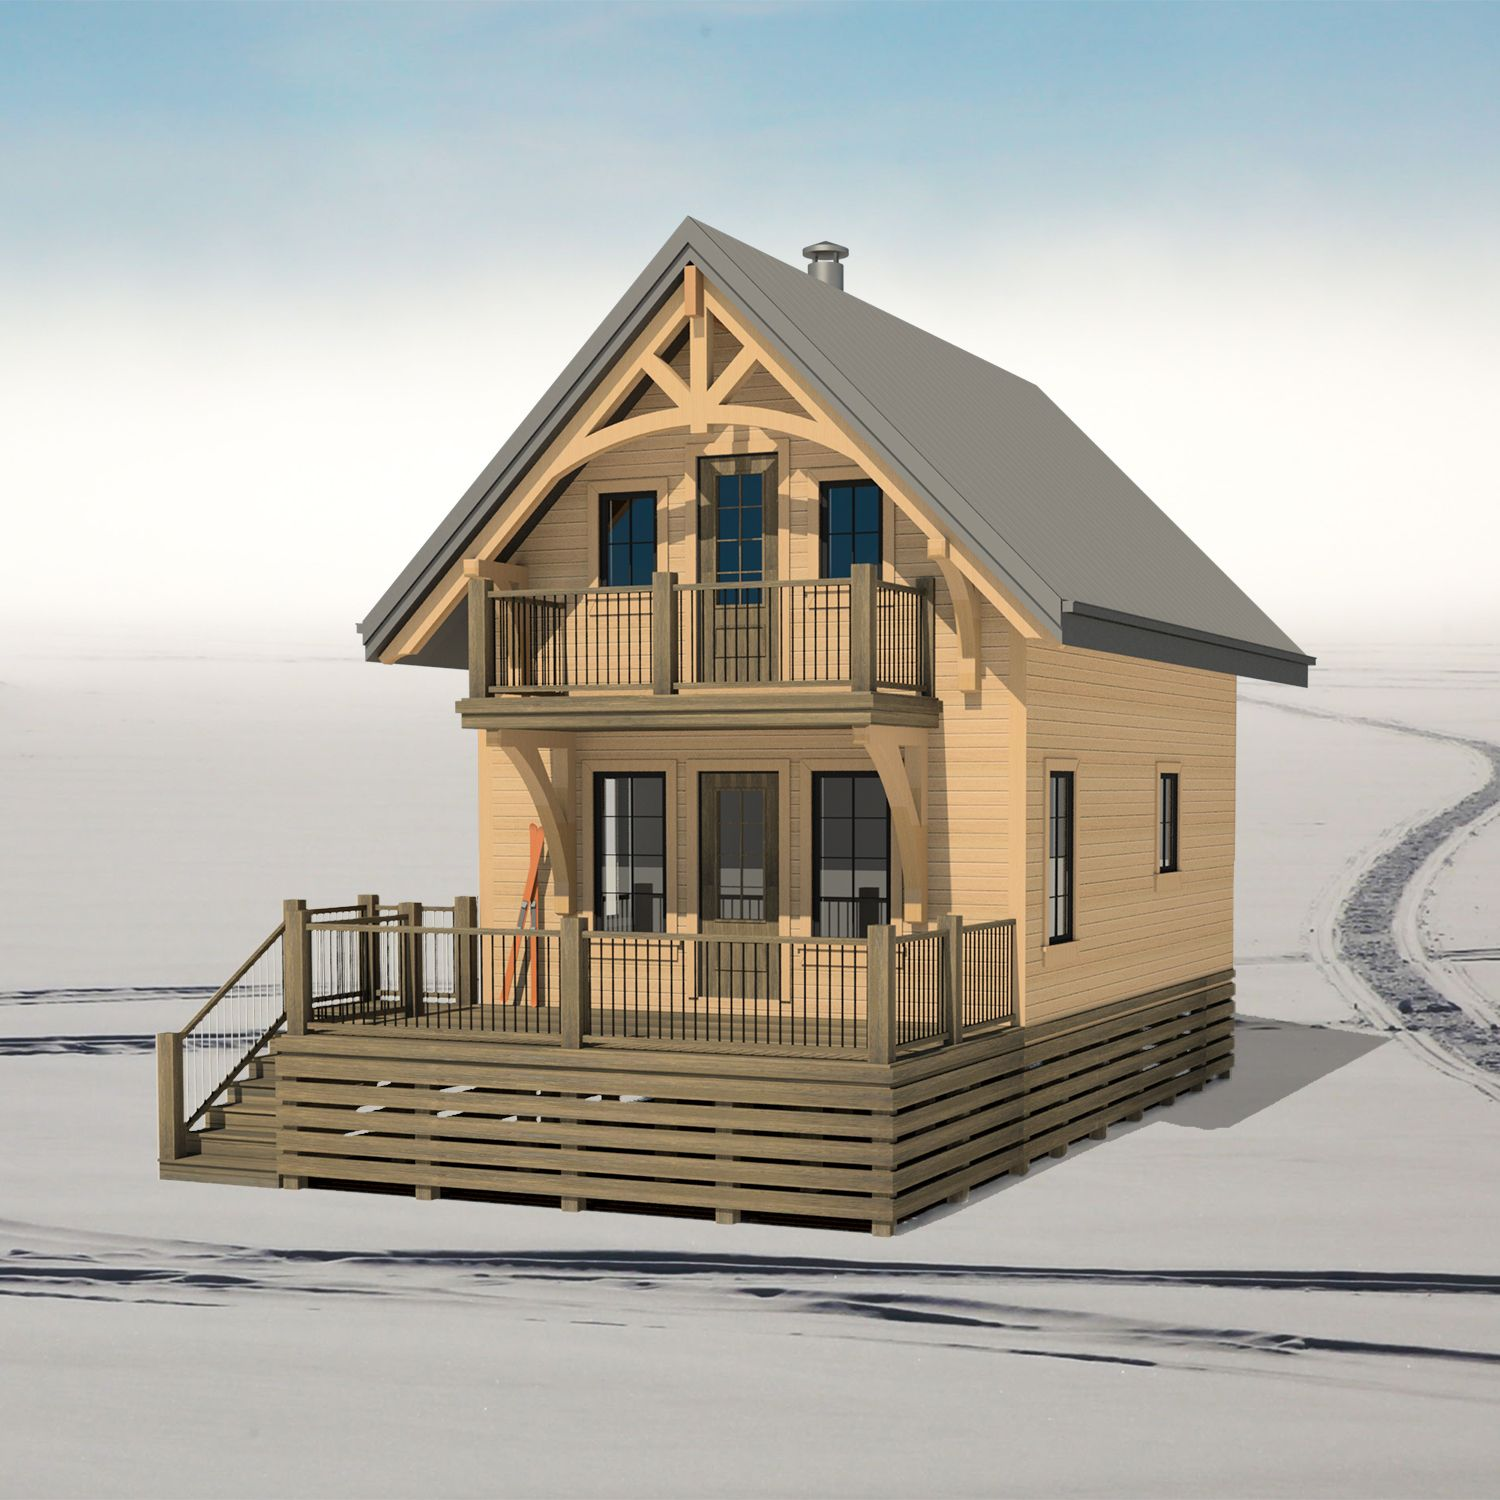 Tiny Home Designs: House Plans, Small House Plans, Tiny